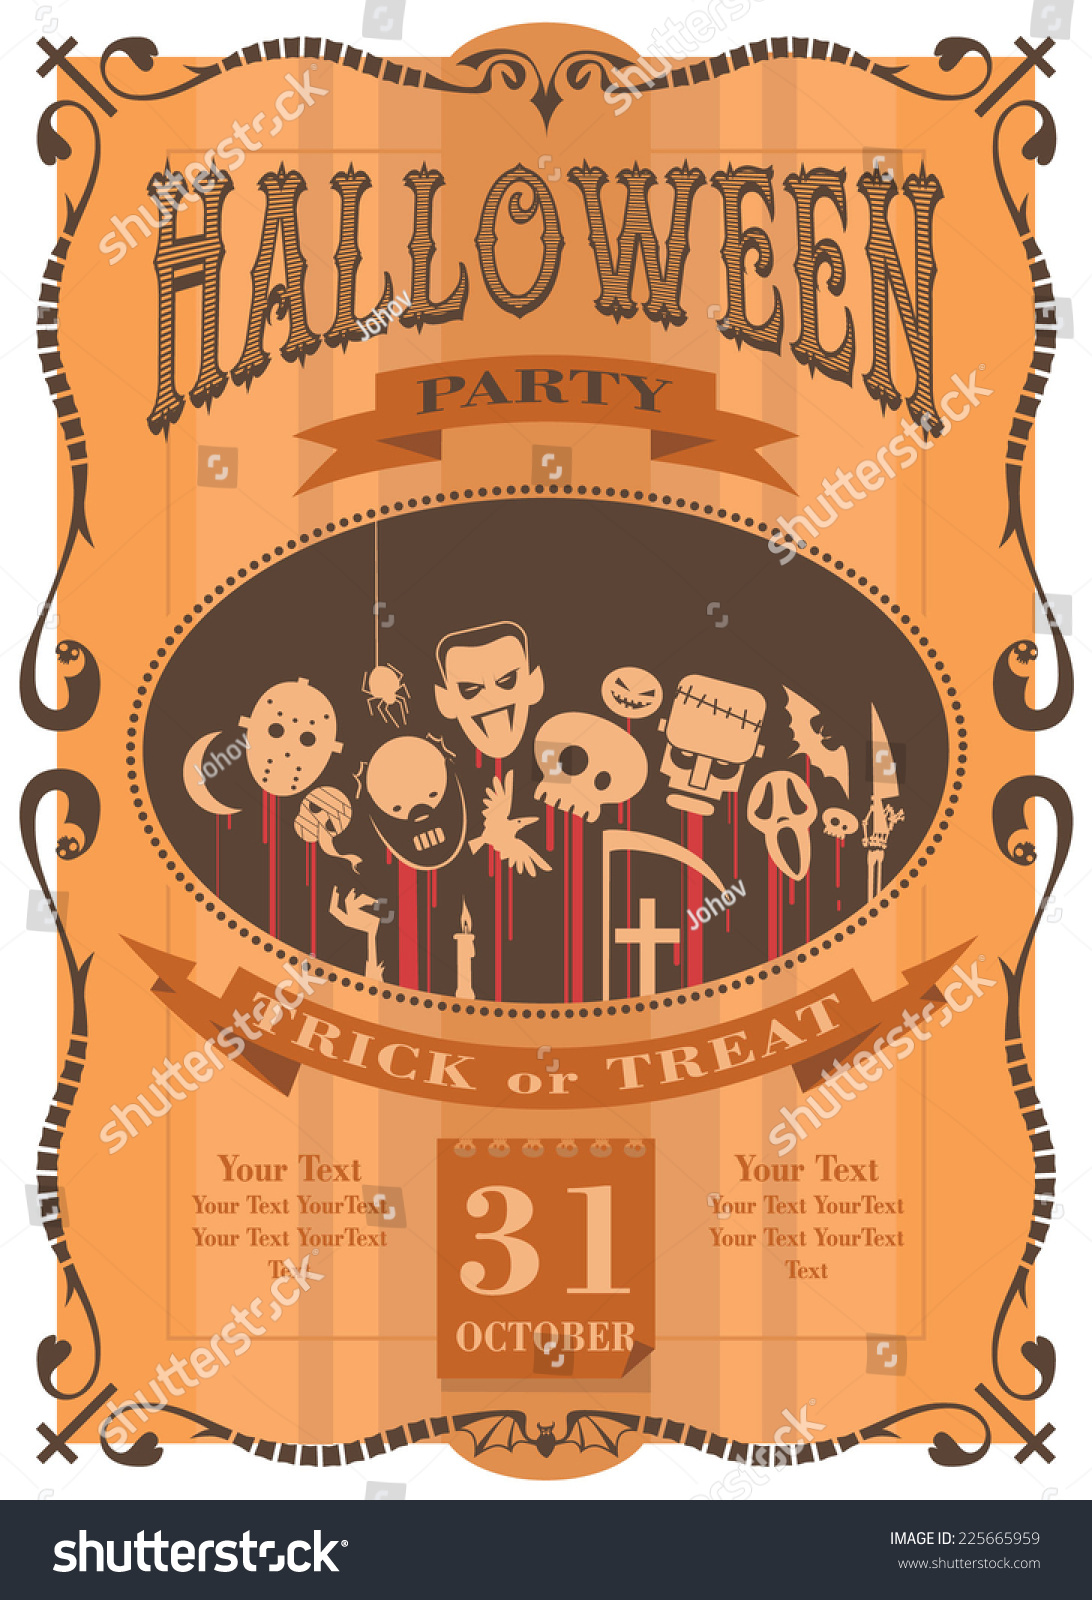 100 halloween certificate template halloween party desserts halloween certificate template halloween party invitation template stock vector 225665959 yadclub Choice Image